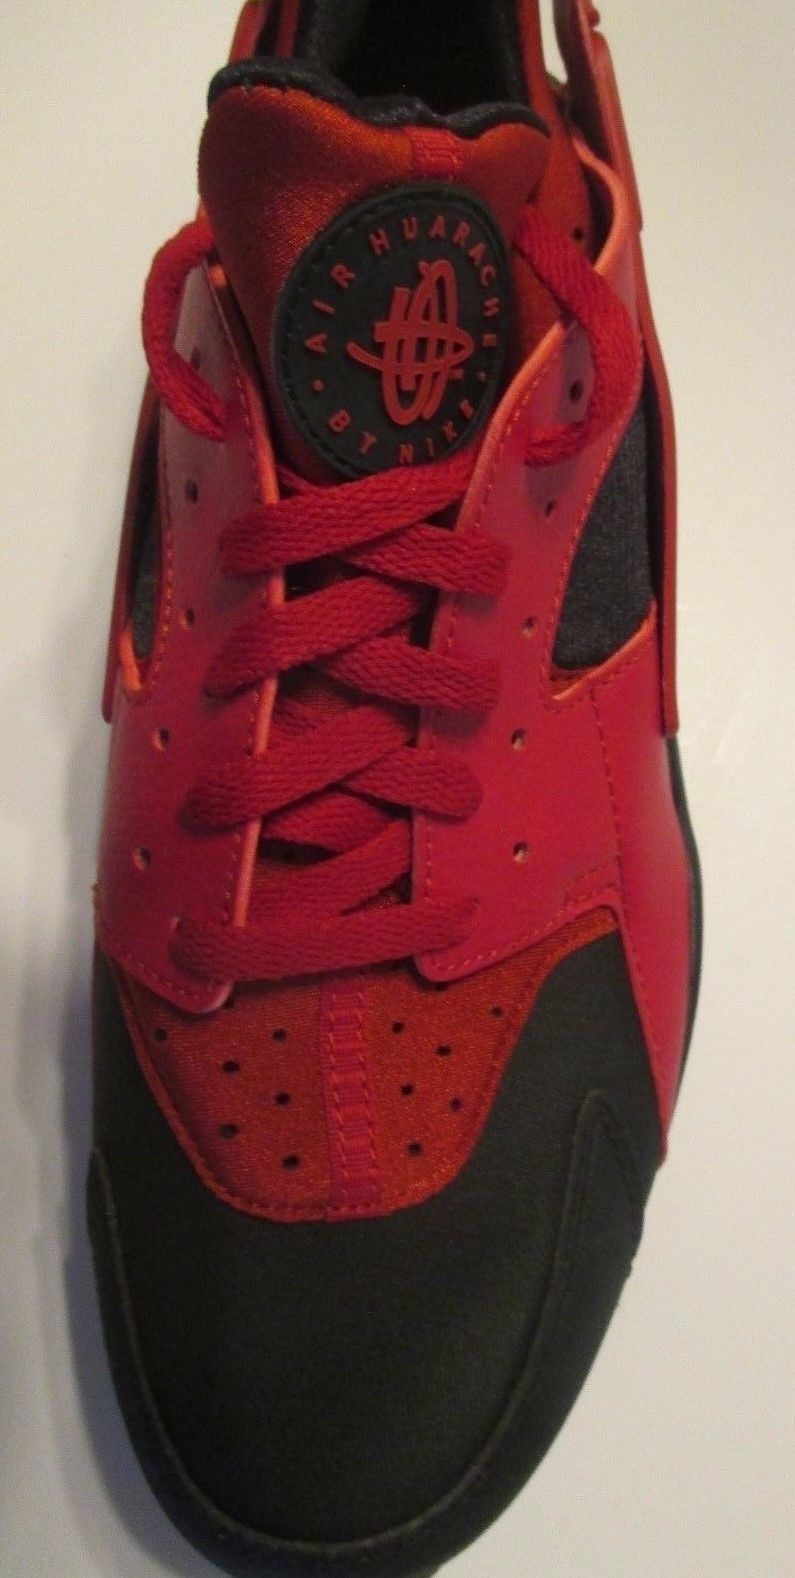 Image of NIKE Air Huarache - Love Hate Running Shoes Red Black 704830 006 - Size 13 - New